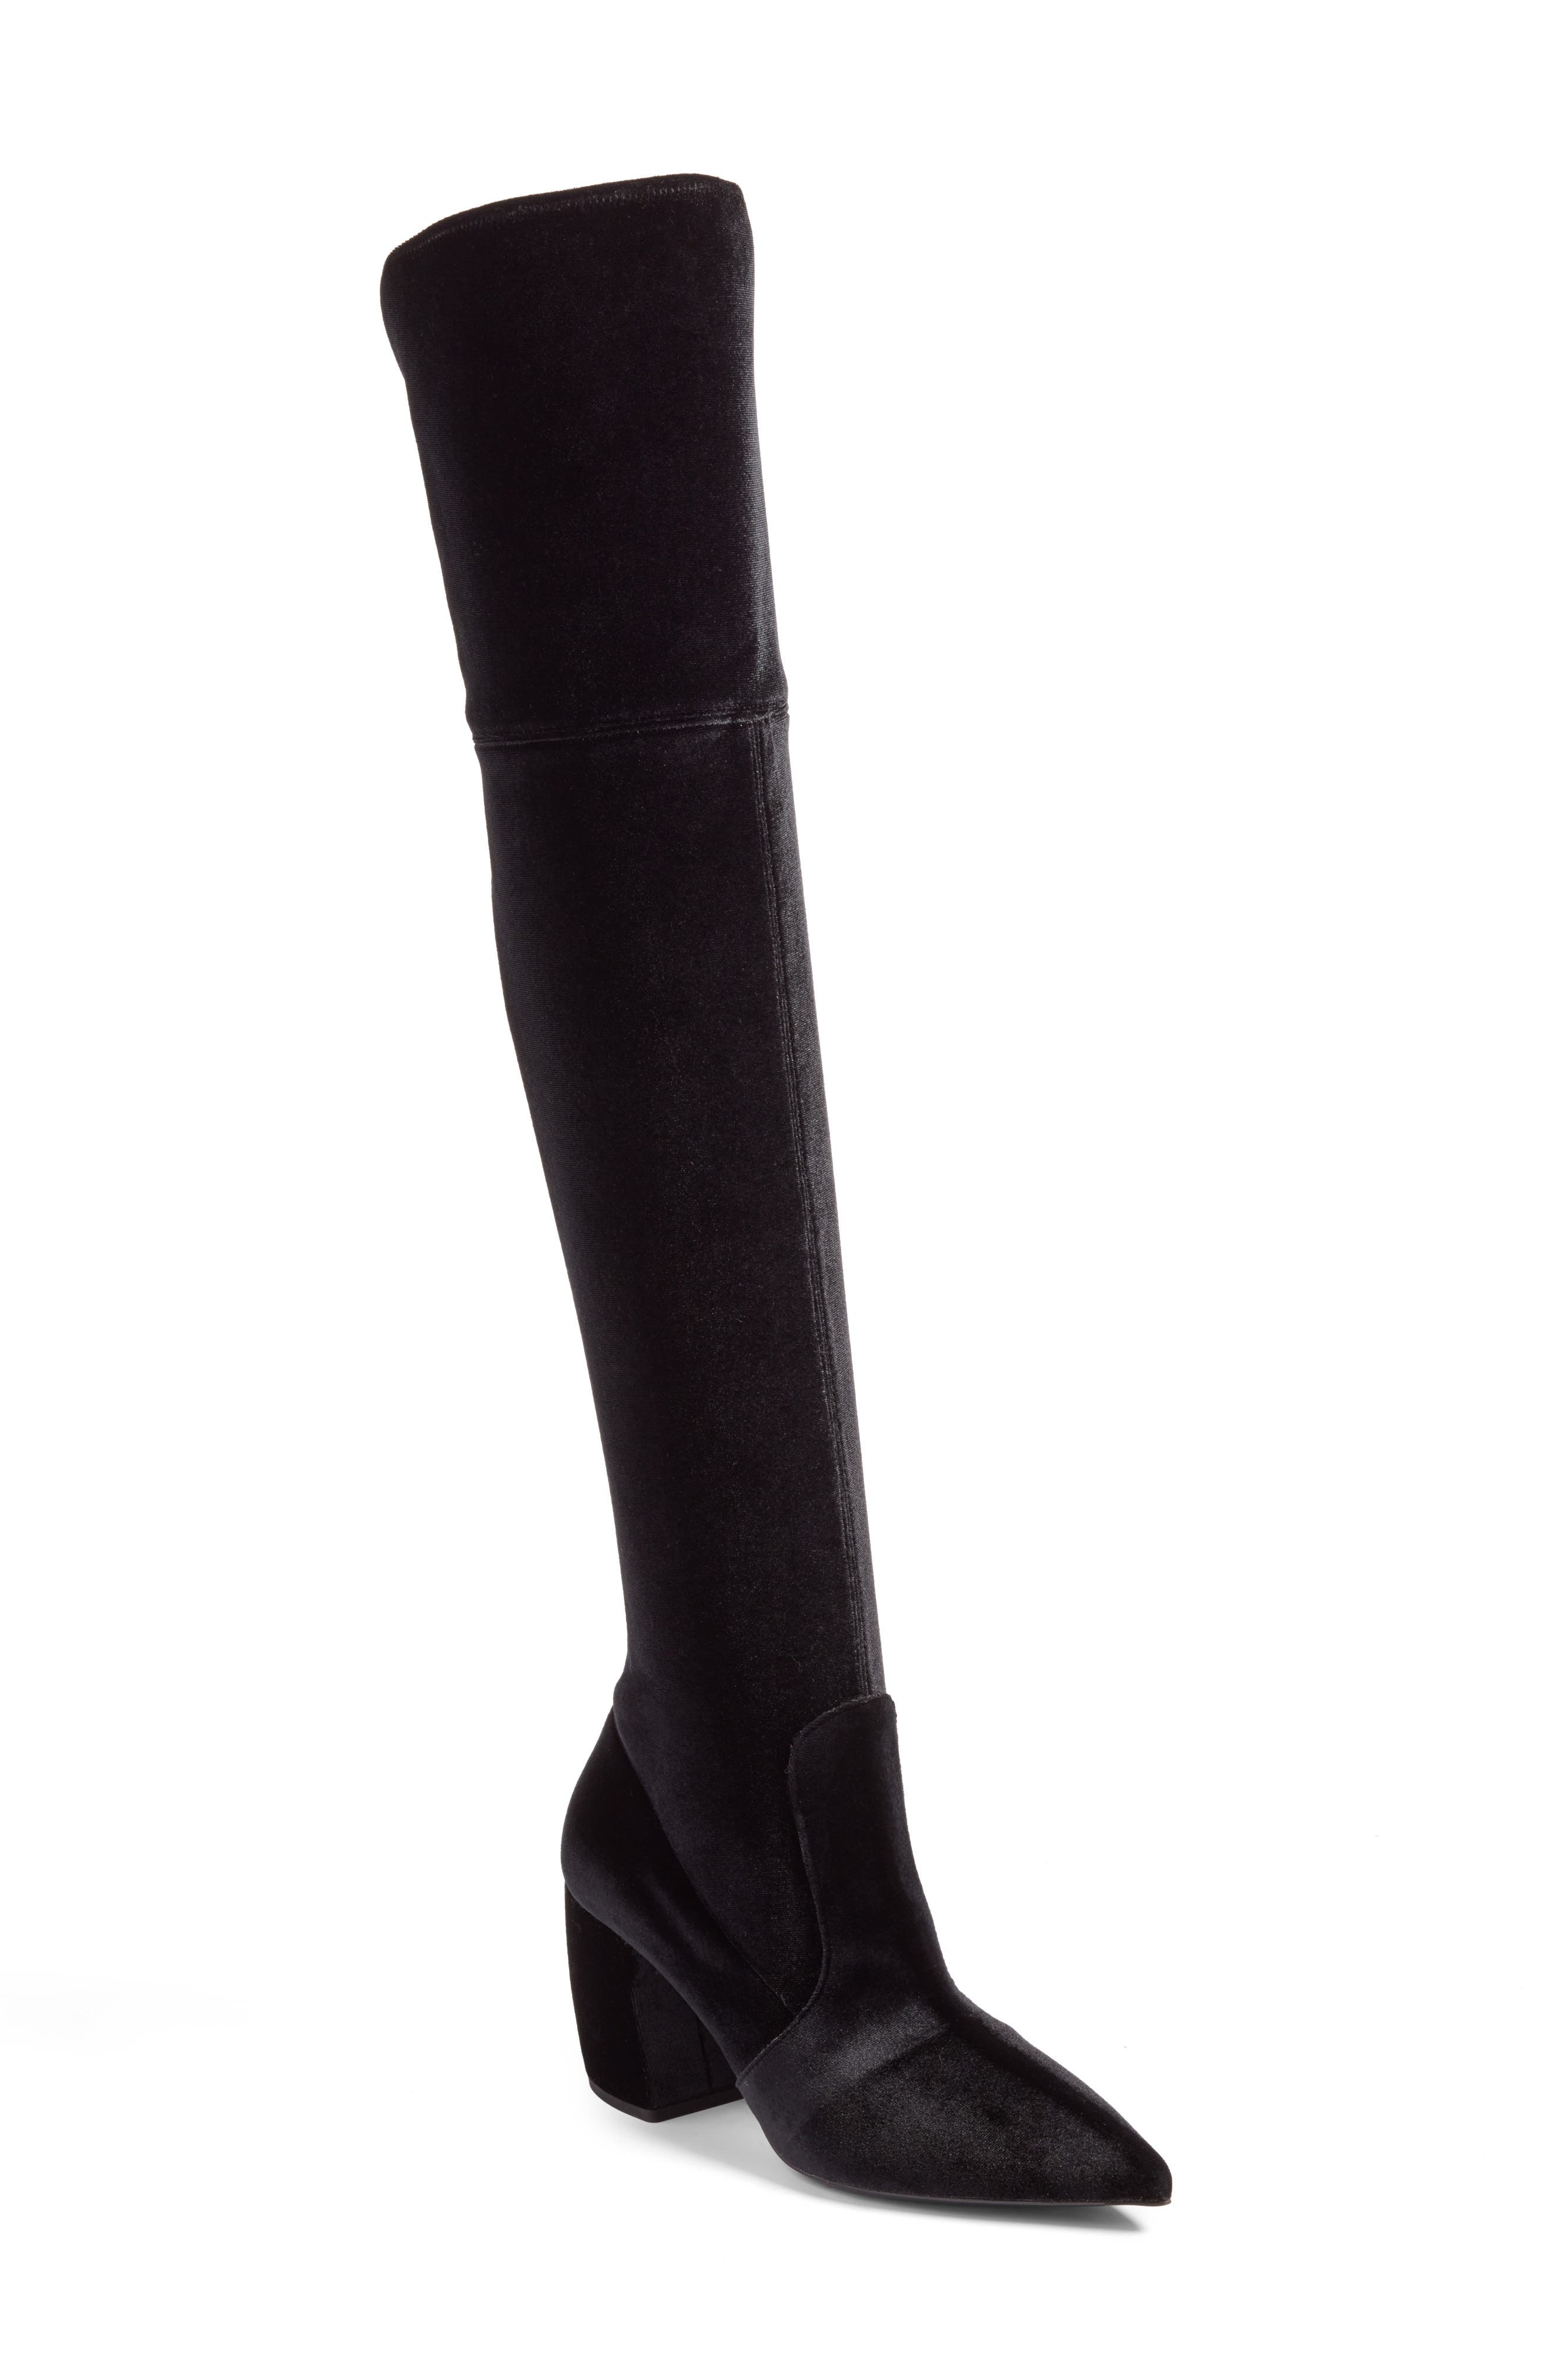 Over the Knee Boot,                         Main,                         color, Black